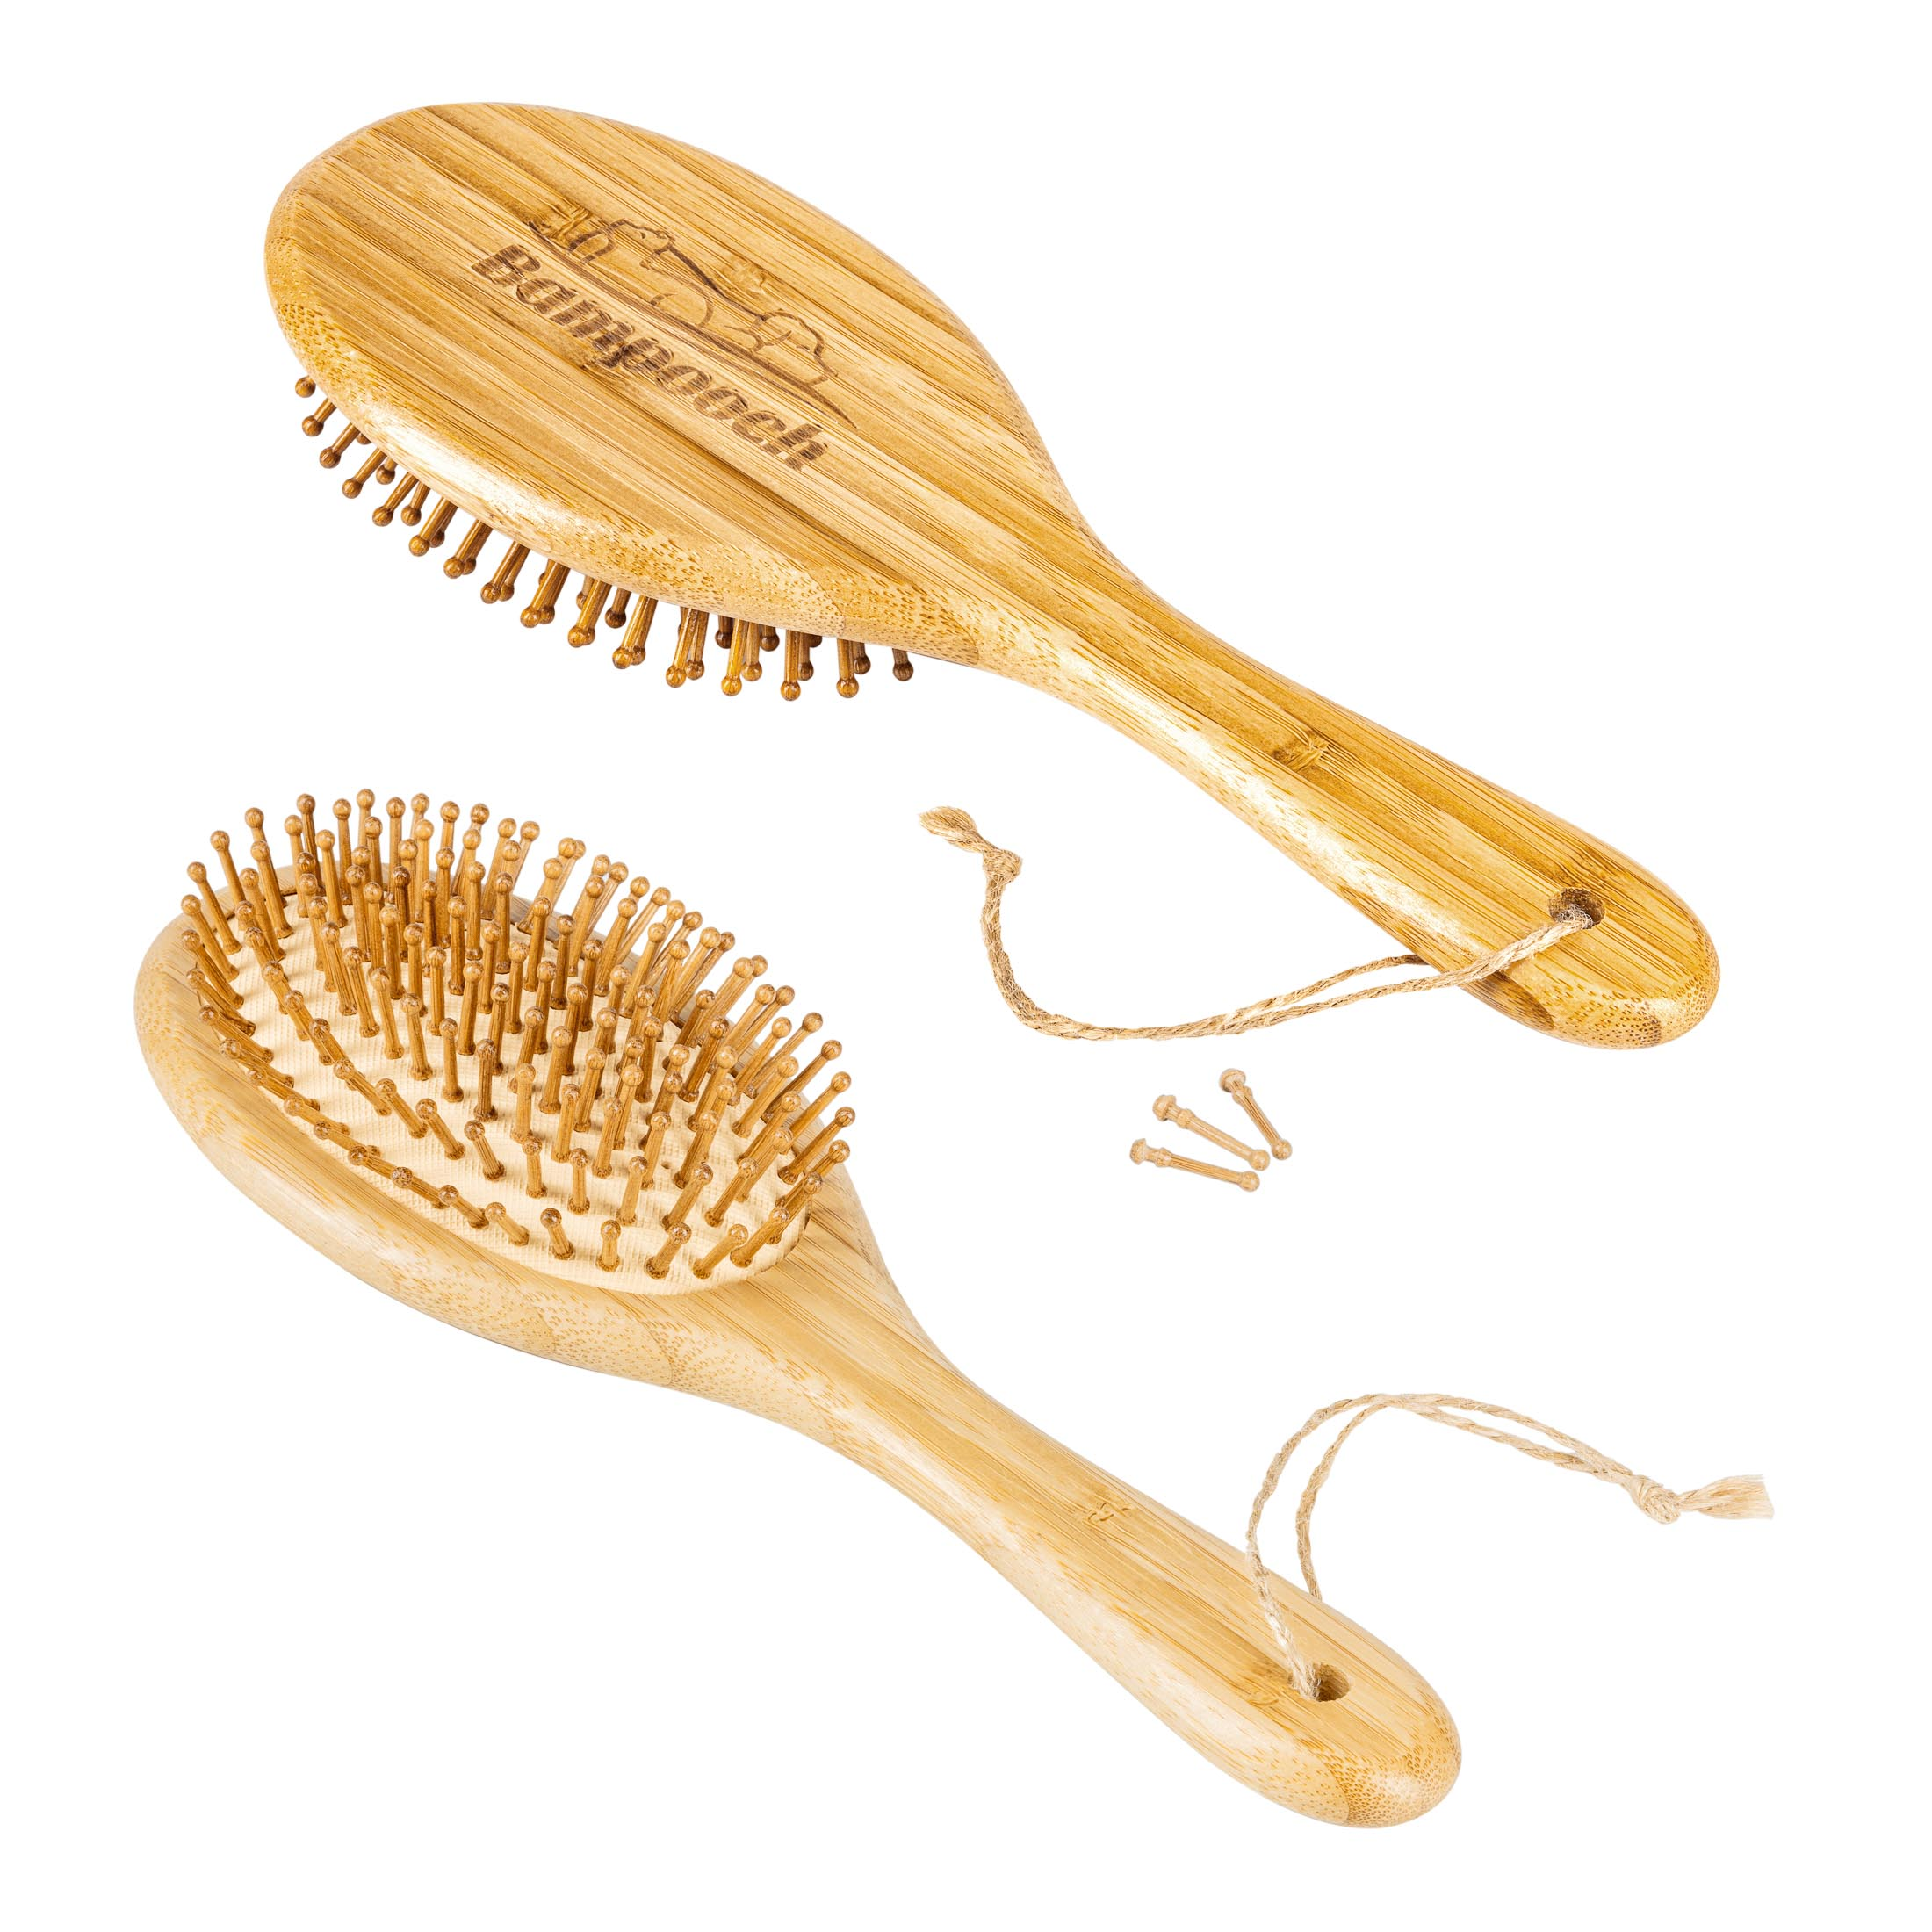 Pet Brush Main photo with two sides and 3 pins - Sample of photography for Amazon